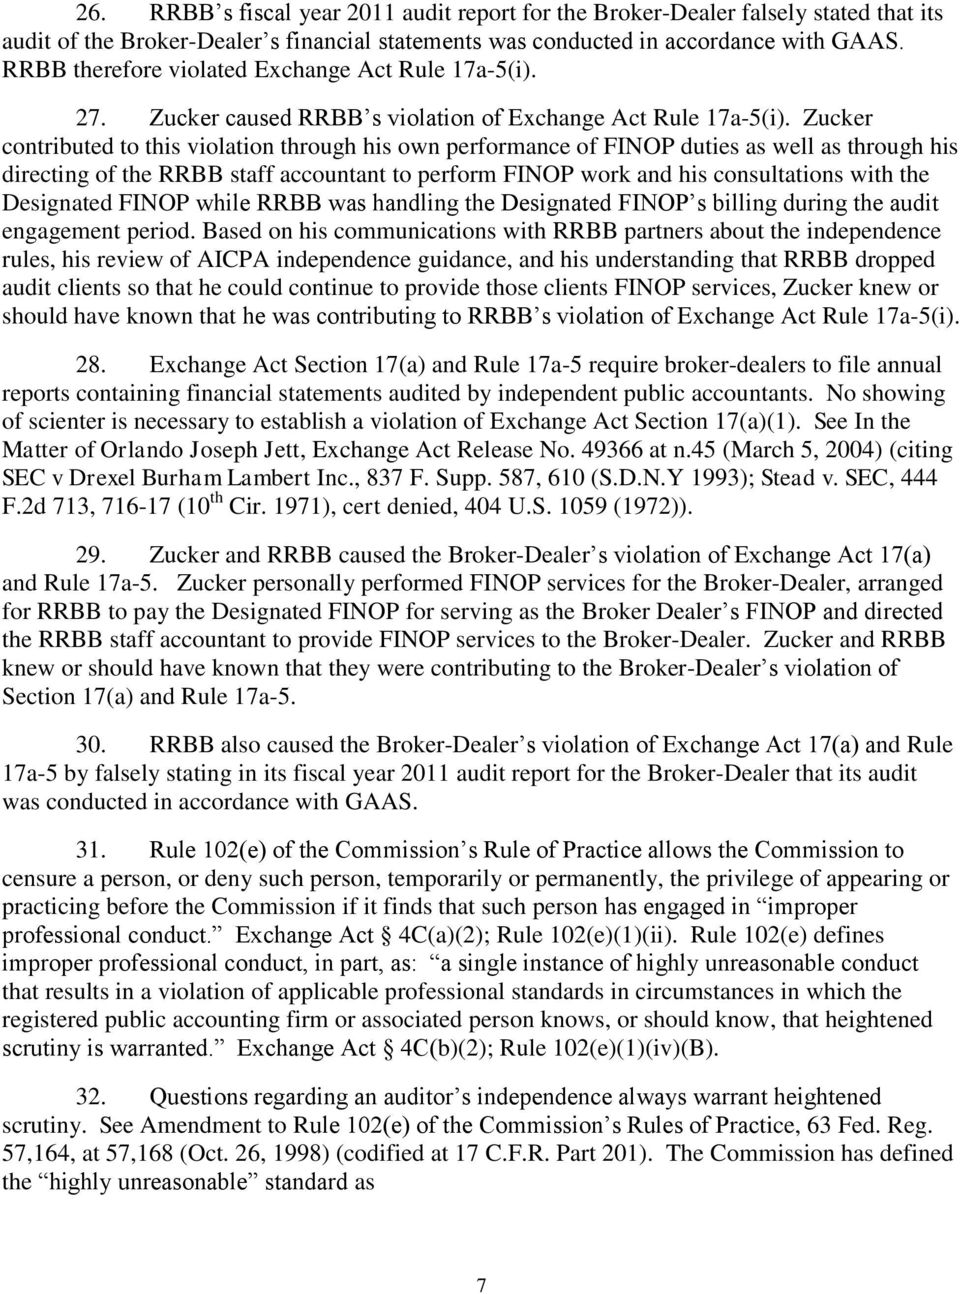 Zucker contributed to this violation through his own performance of FINOP duties as well as through his directing of the RRBB staff accountant to perform FINOP work and his consultations with the